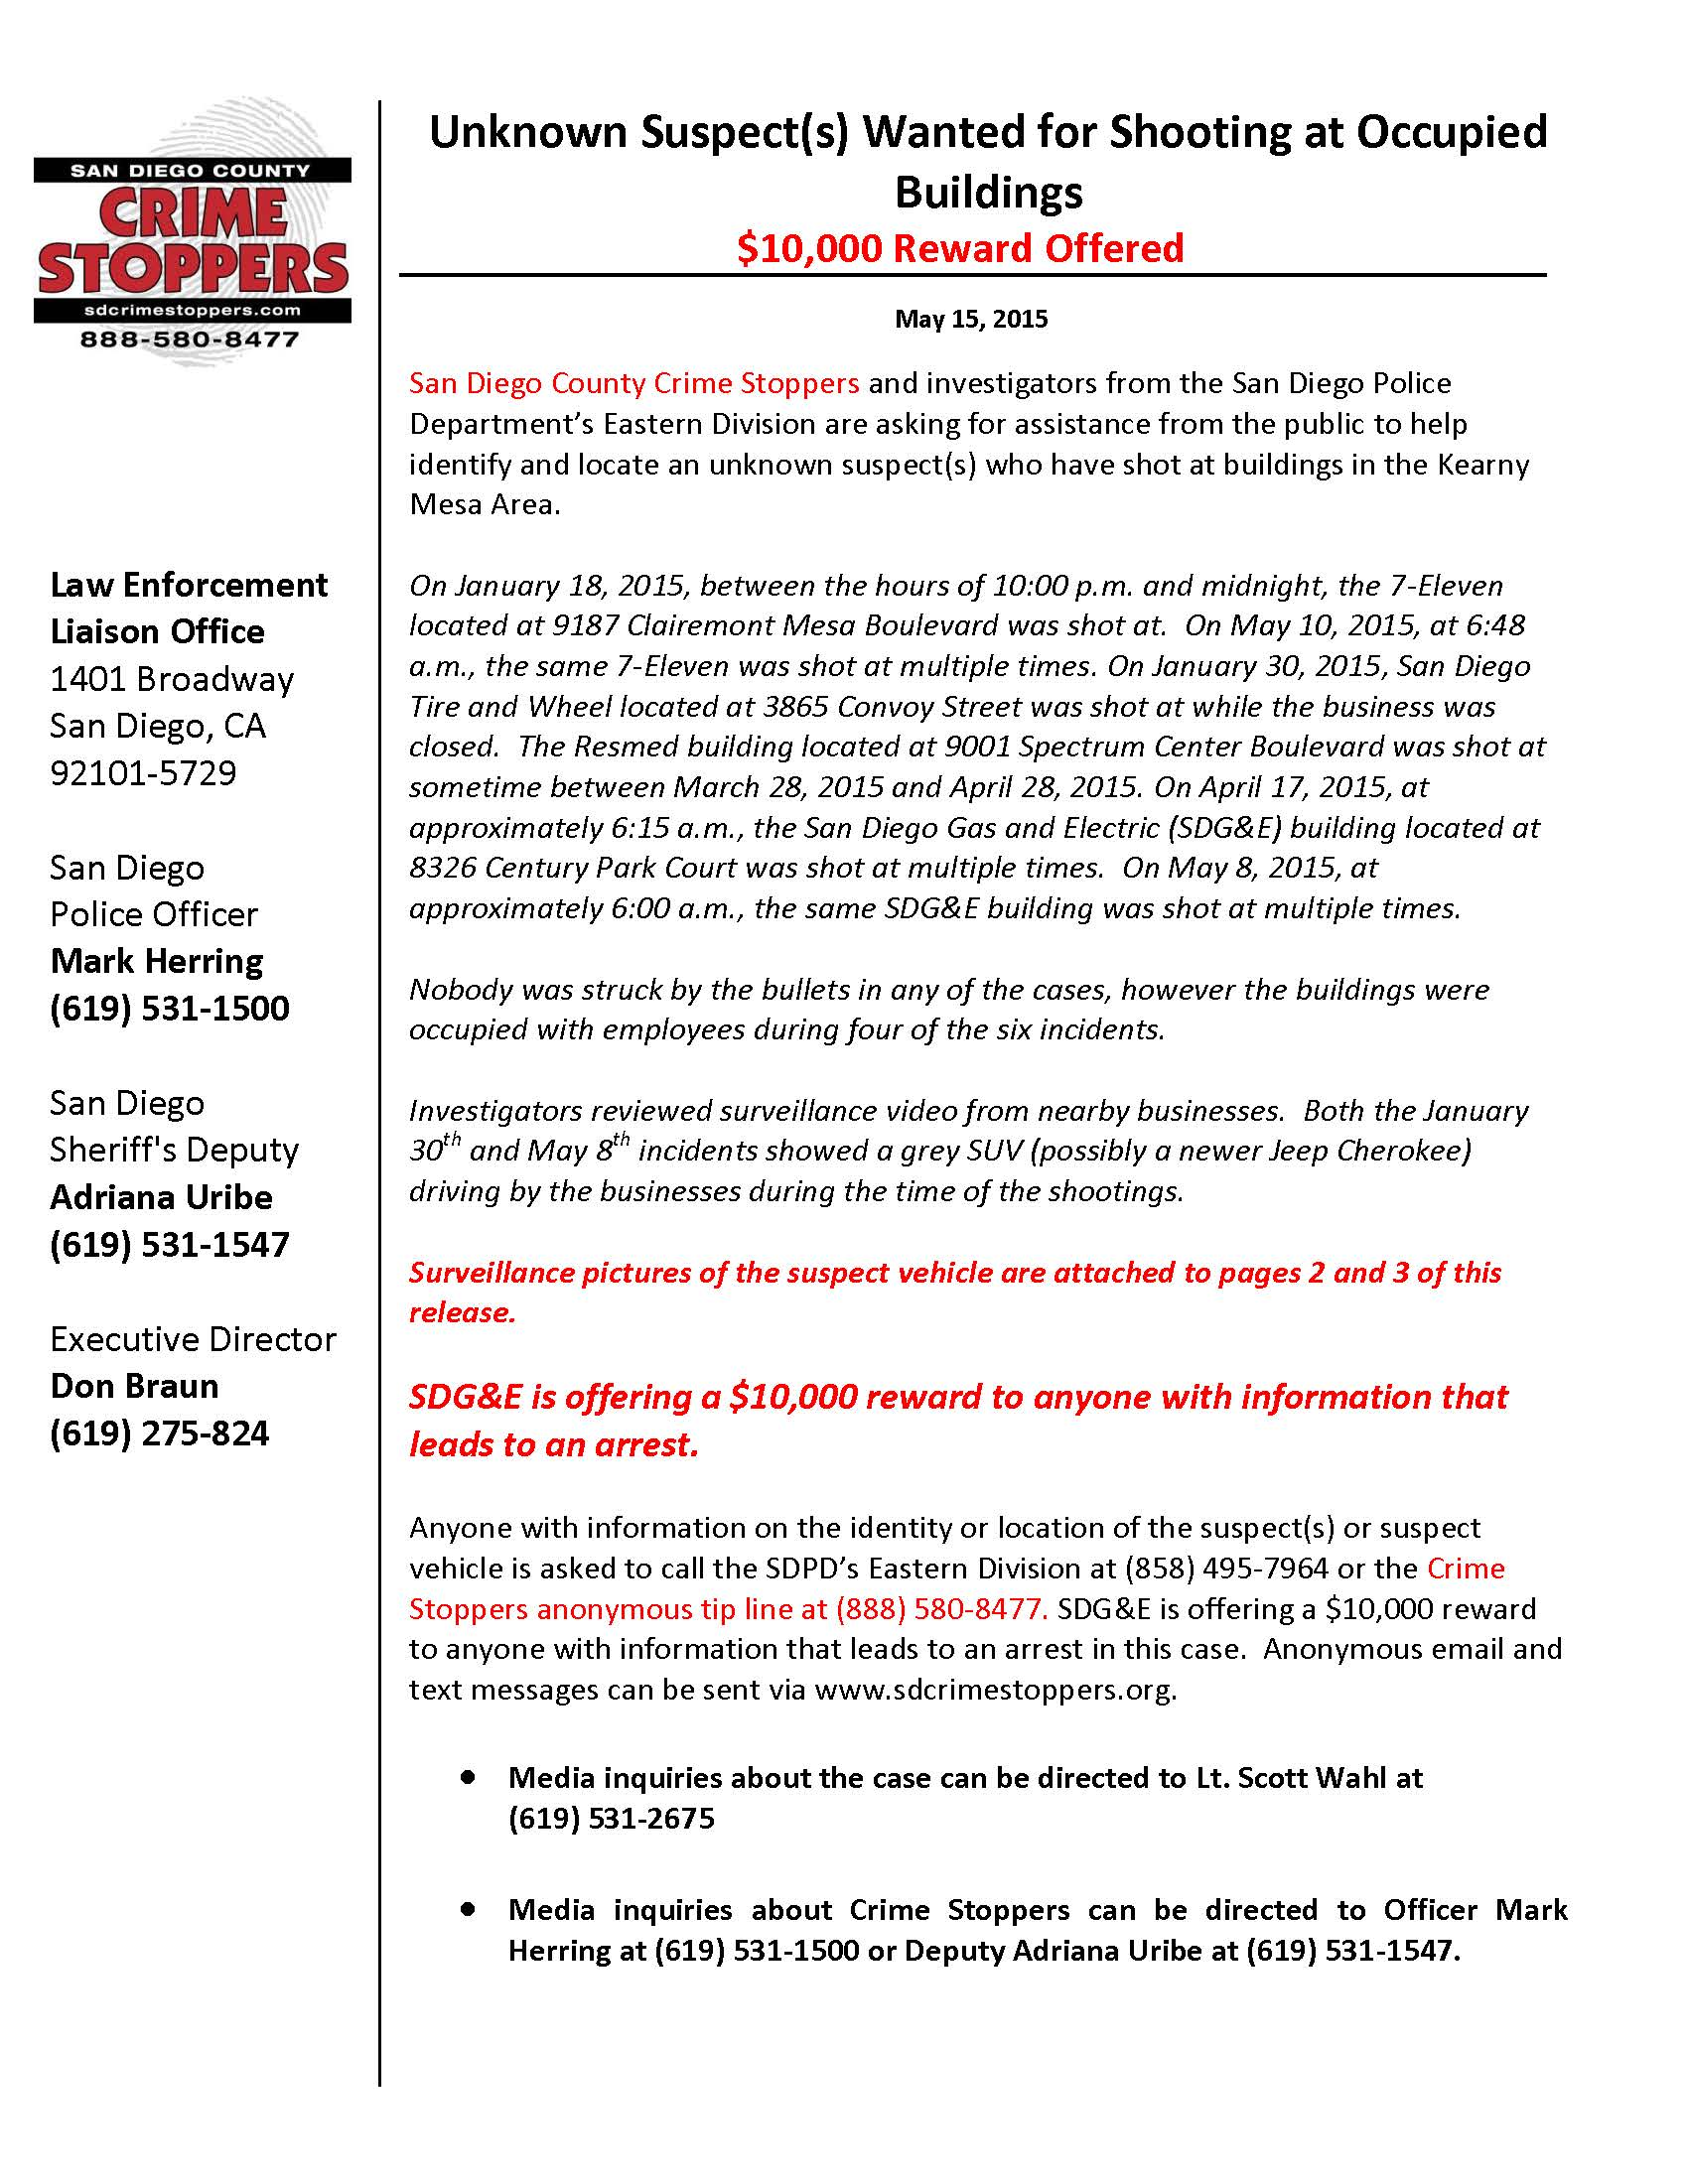 051515 SDG&E Building Shootings_Page_1